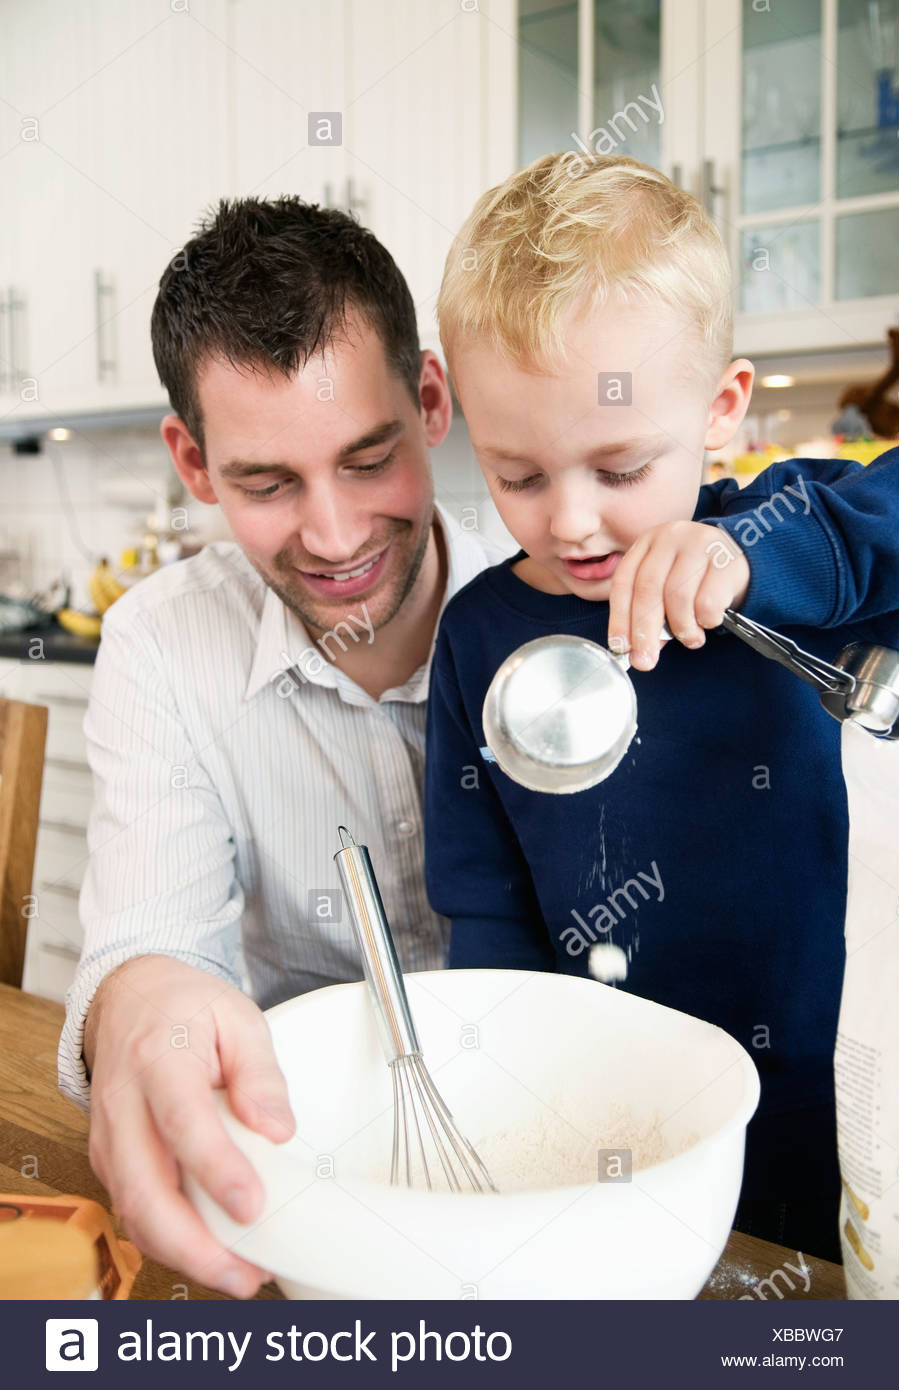 Father and child having fun in the kitchen - Stock Image